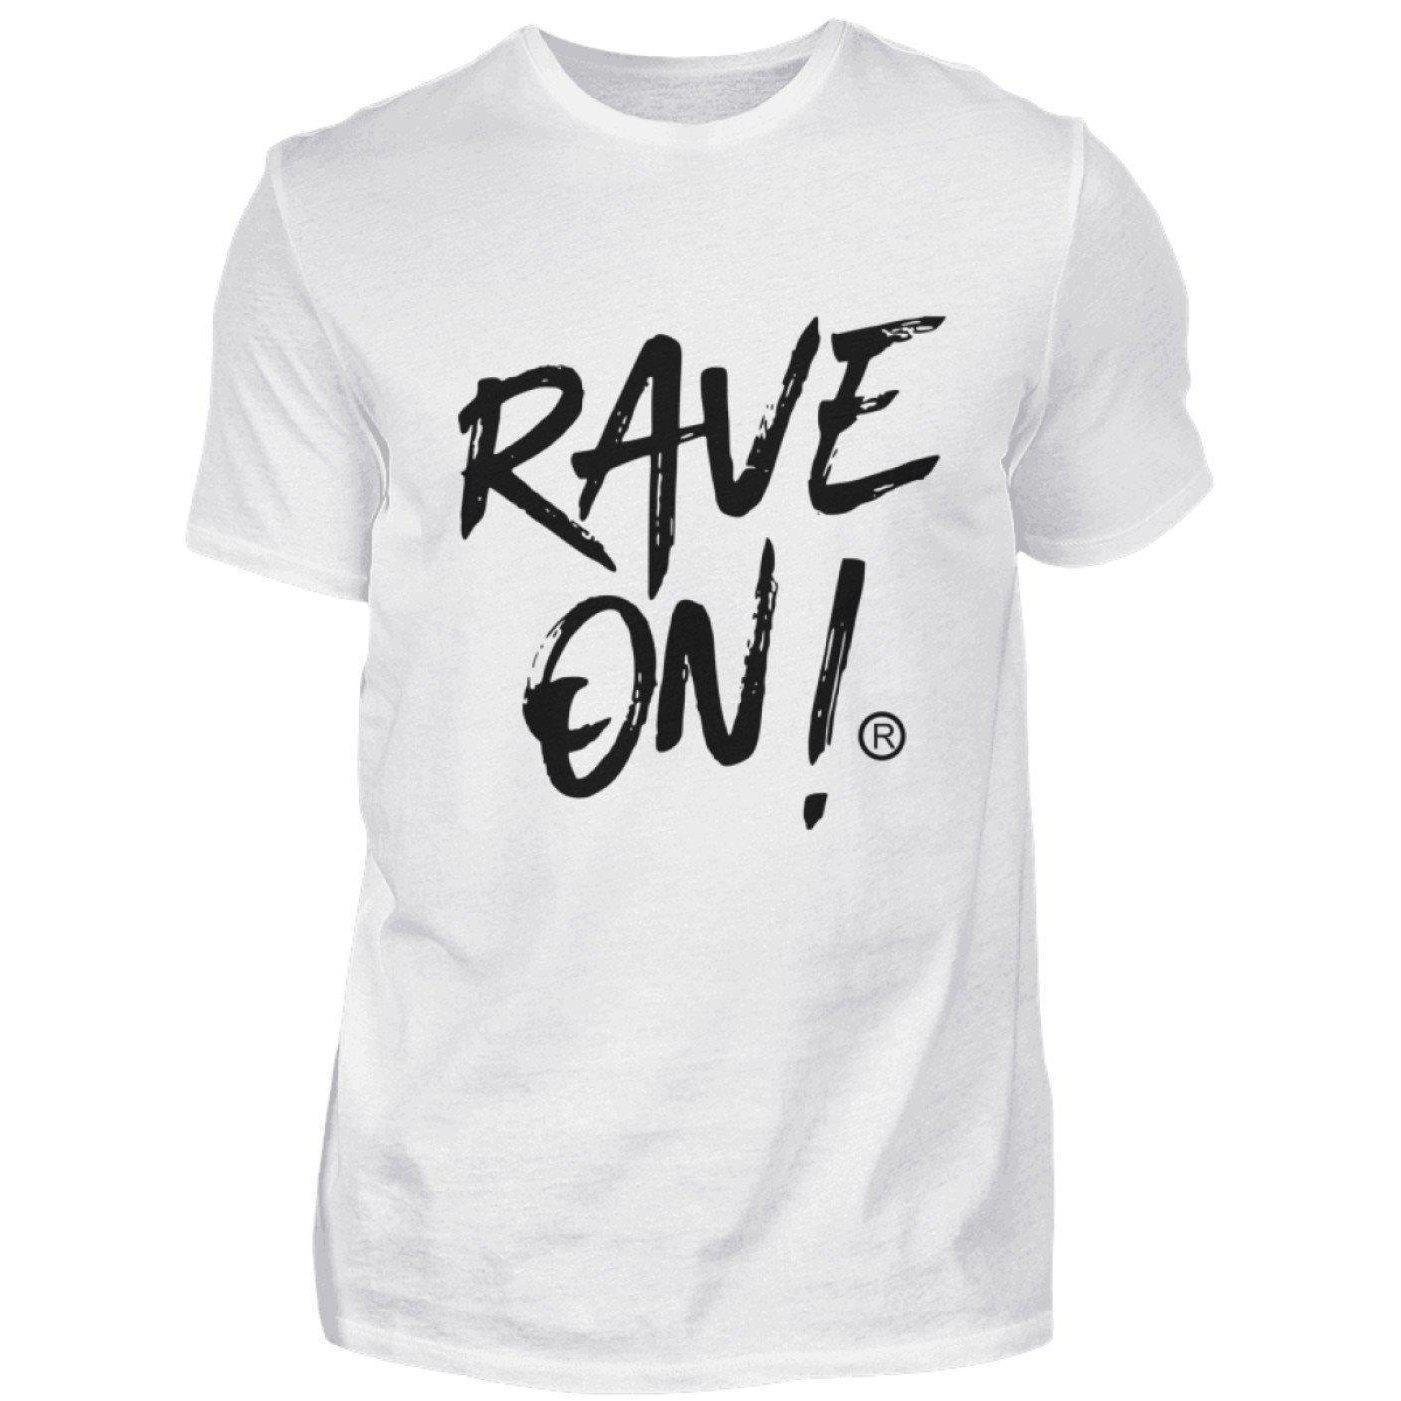 RAVE ON!® Light Collection - Herren Shirt Herren Basic T-Shirt S - Rave On!® der Club & Techno Szene Shop für Coole Junge Mode Streetwear Style & Fashion Outfits + Sexy Festival 420 Stuff